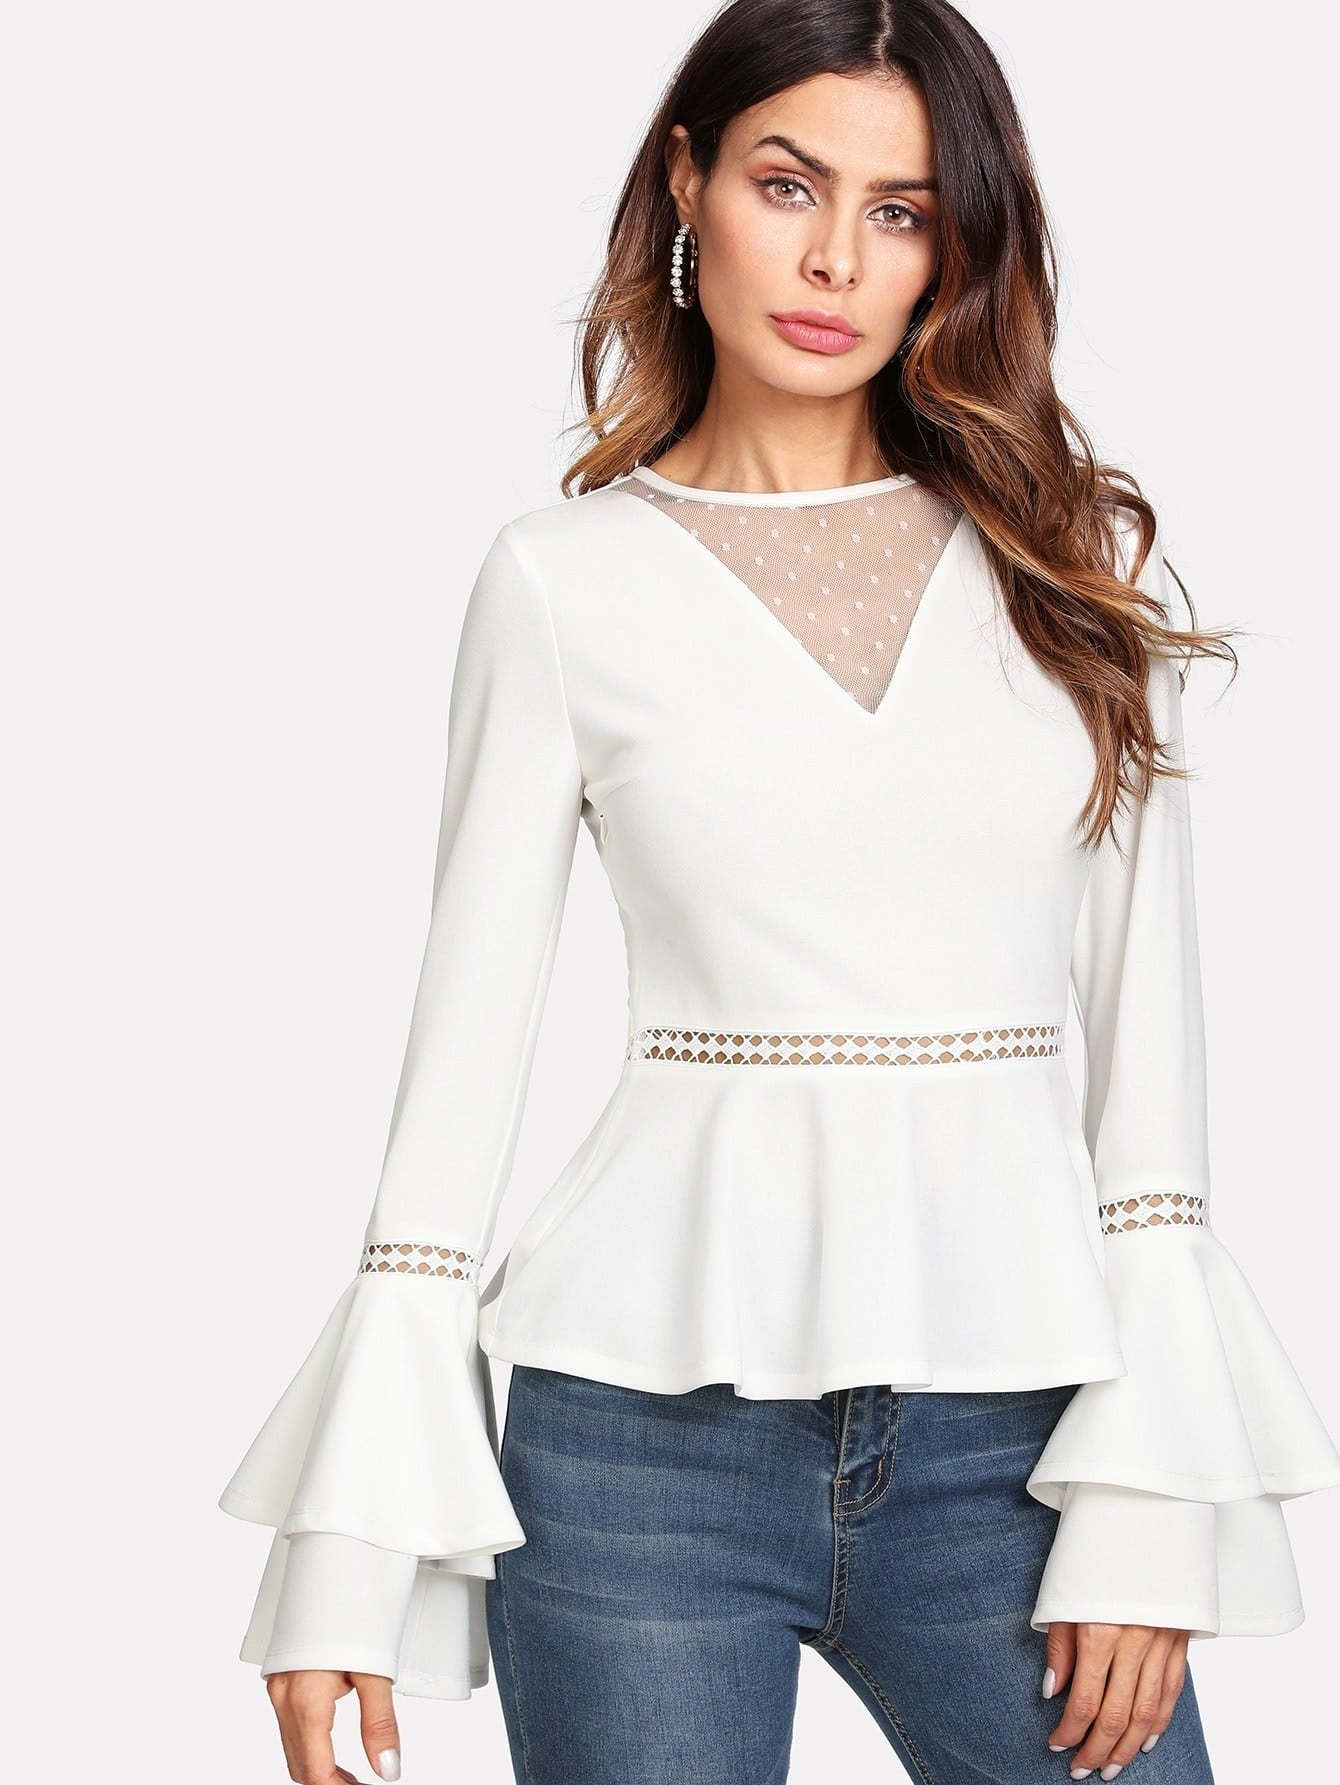 Dot Mesh V Neck Lace Insert Peplum Top ruffle neck lace yoke peplum top